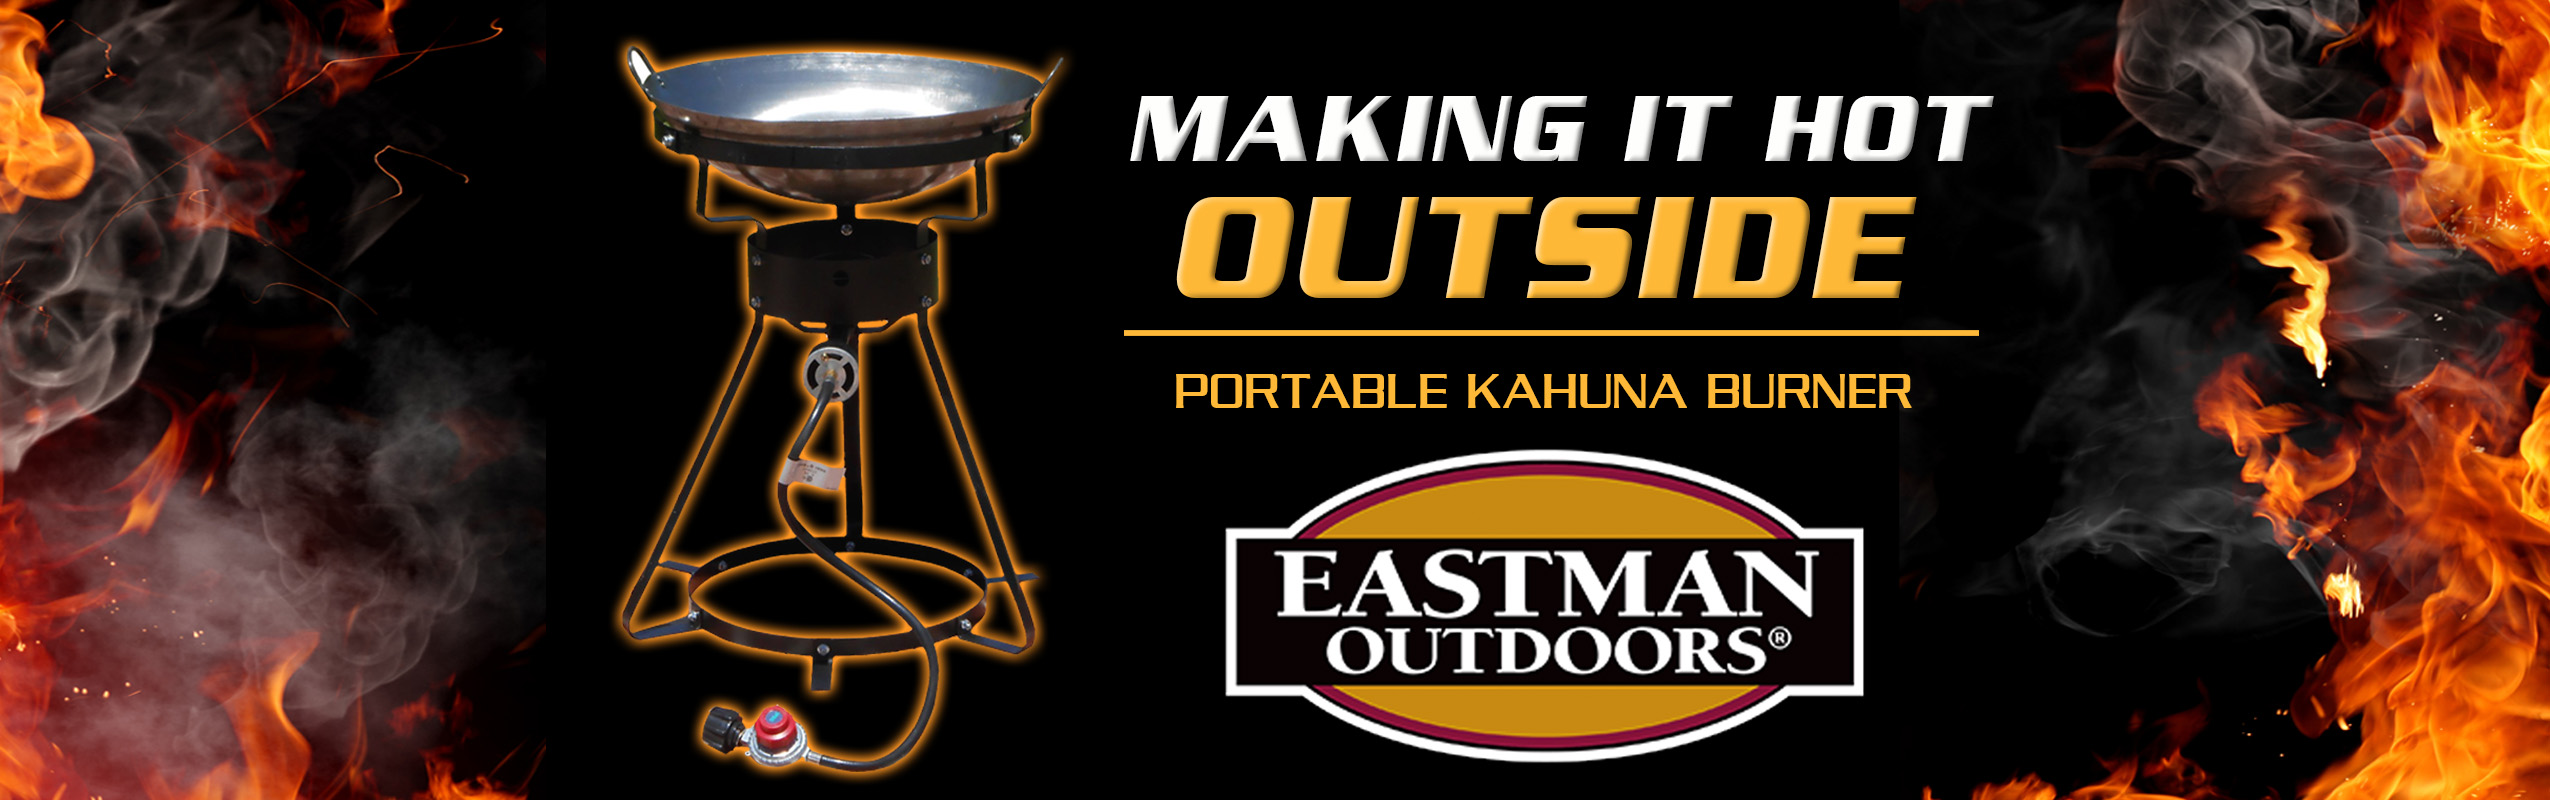 eastman-outdoors-kahuna-burner-slider.jpg